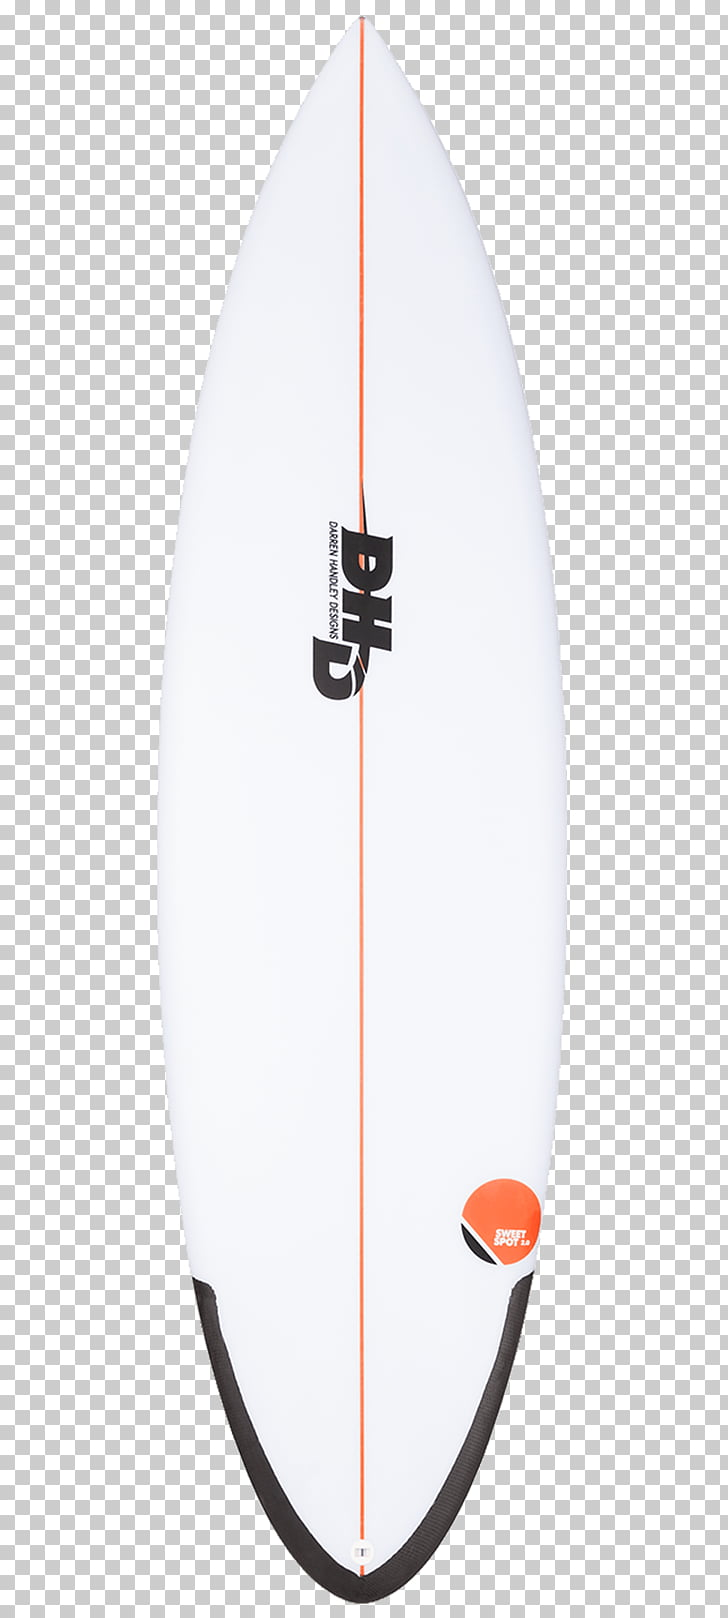 hight resolution of surfboard surfing leg rope fcs surf board png clipart